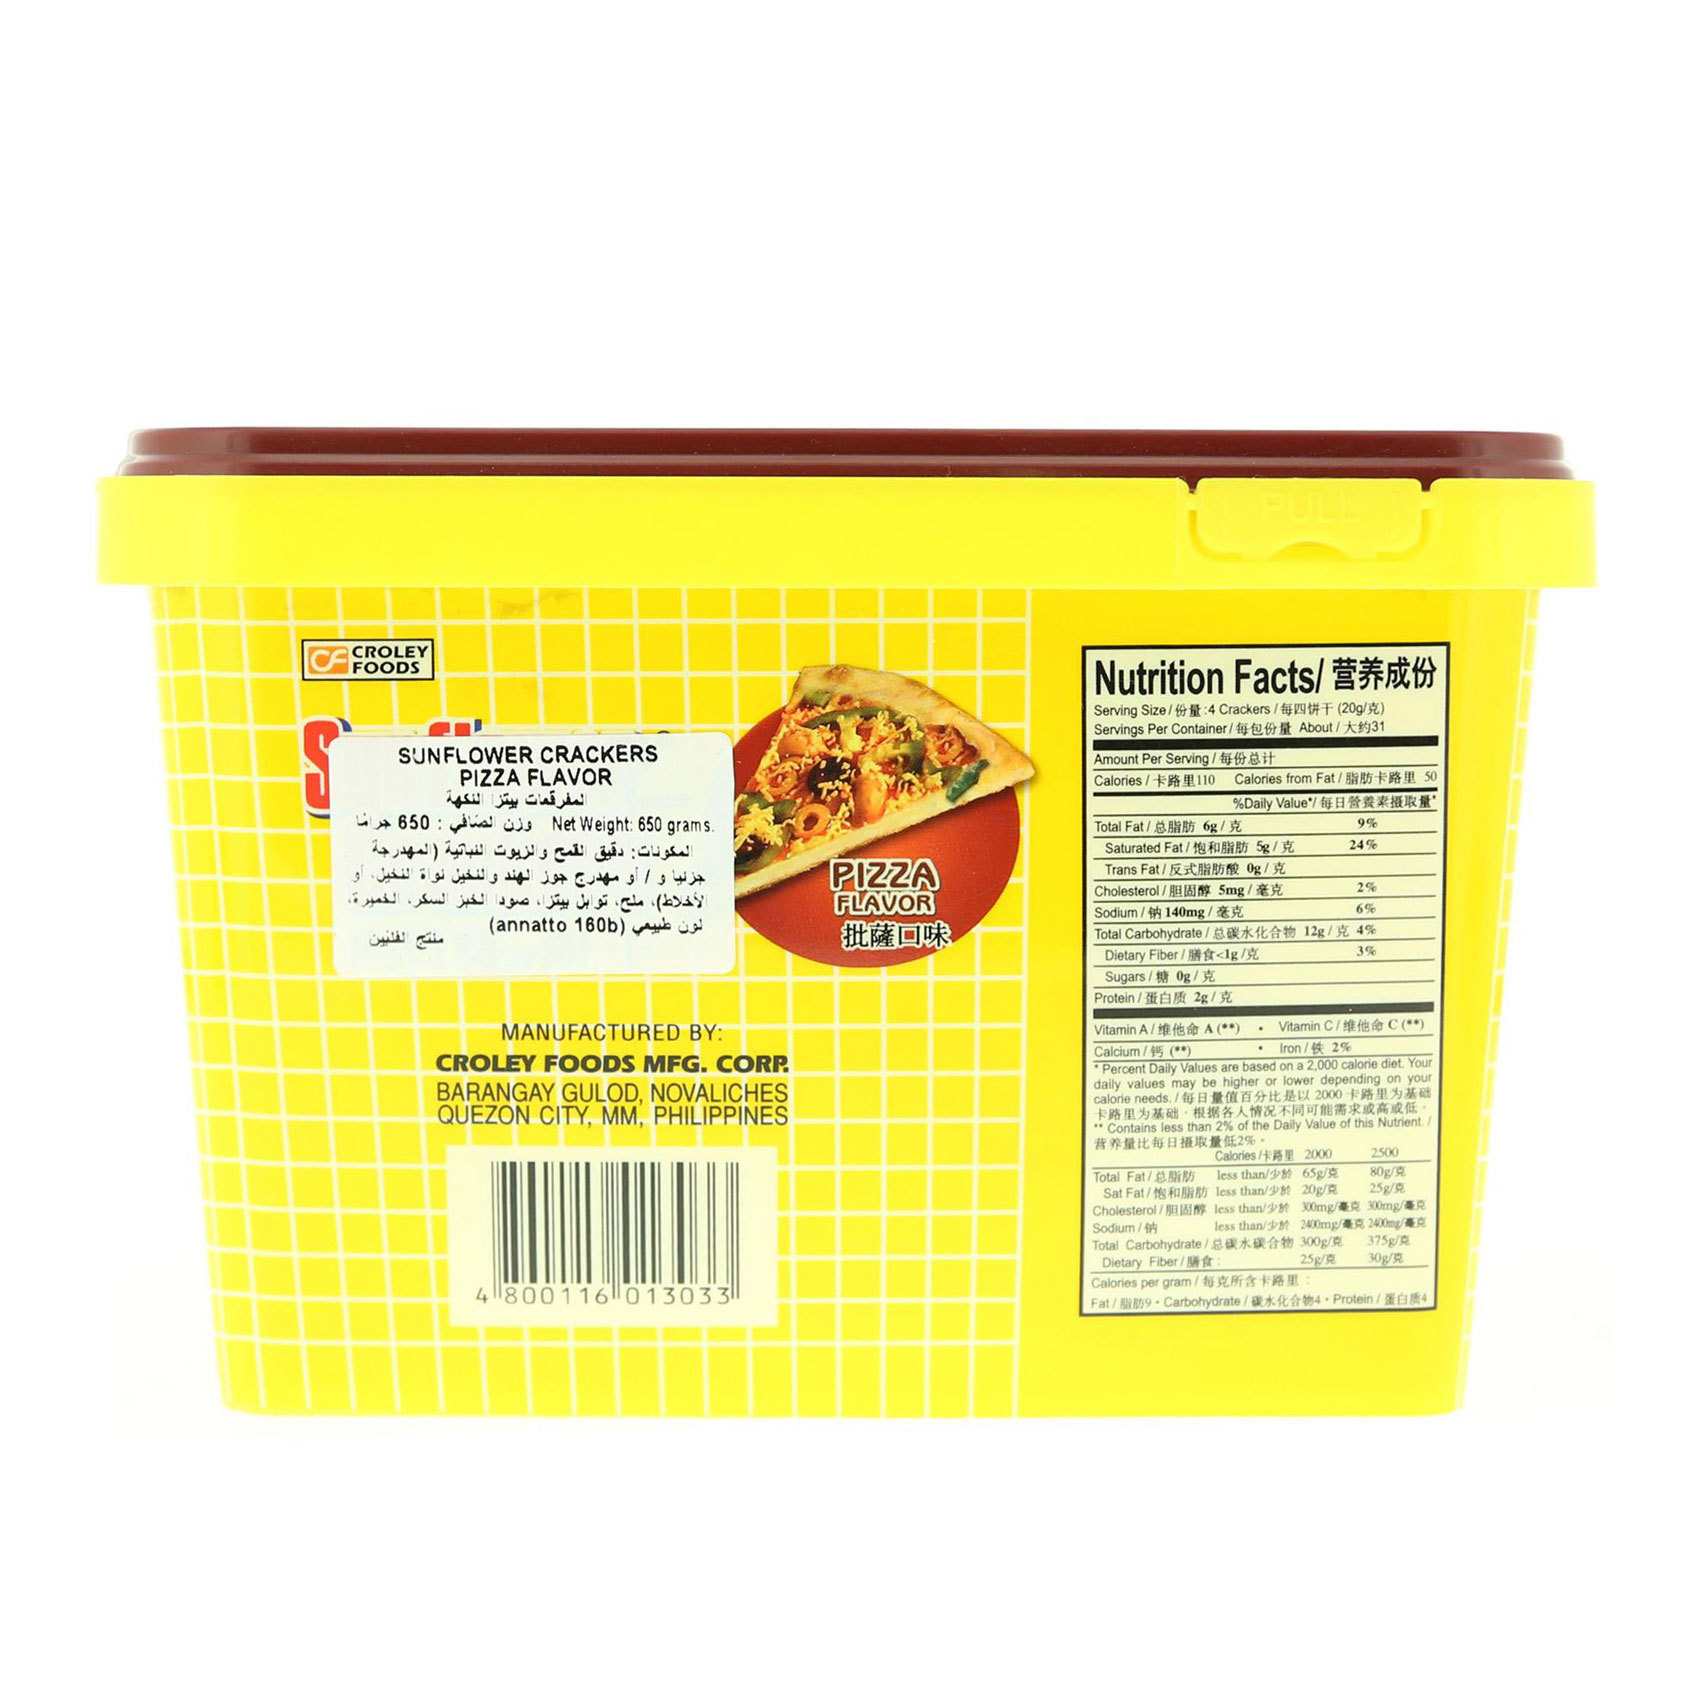 SUNFLOWER CRACKERS PIZZA 650G